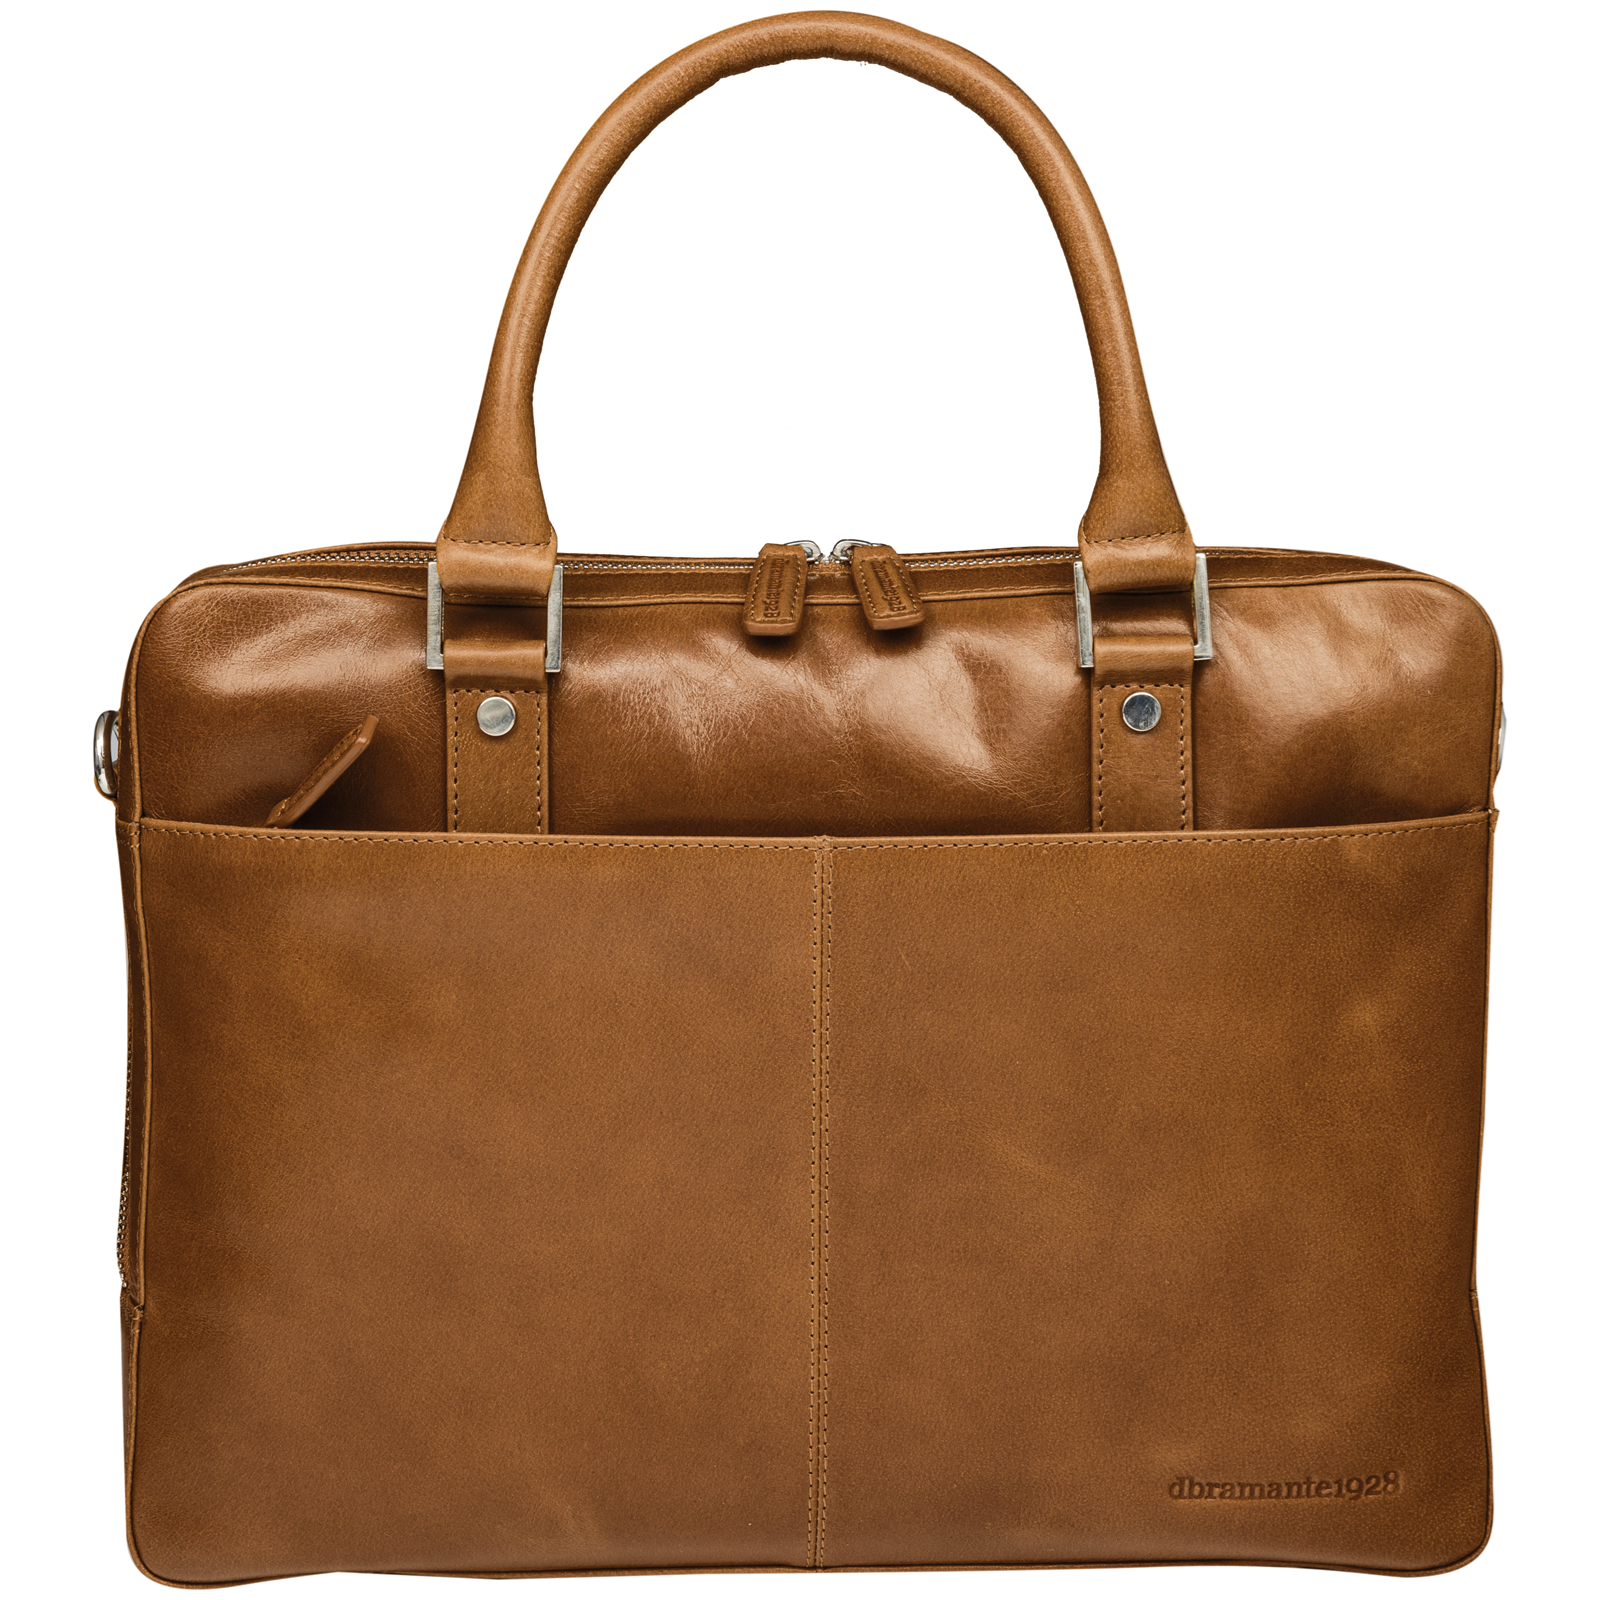 Dbramante1928 16'' Business Bag Rosenborg, Golden Tan